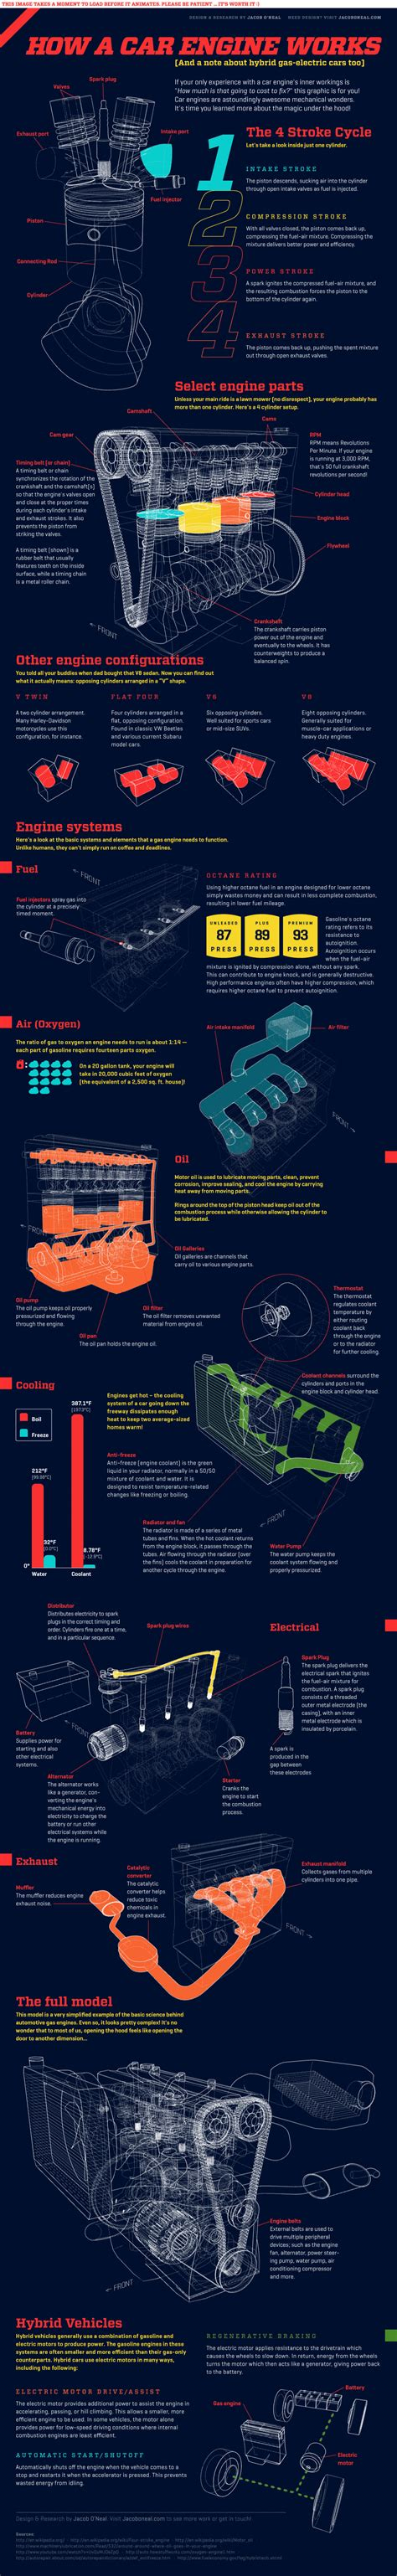 this is how a car engine works animated infographic